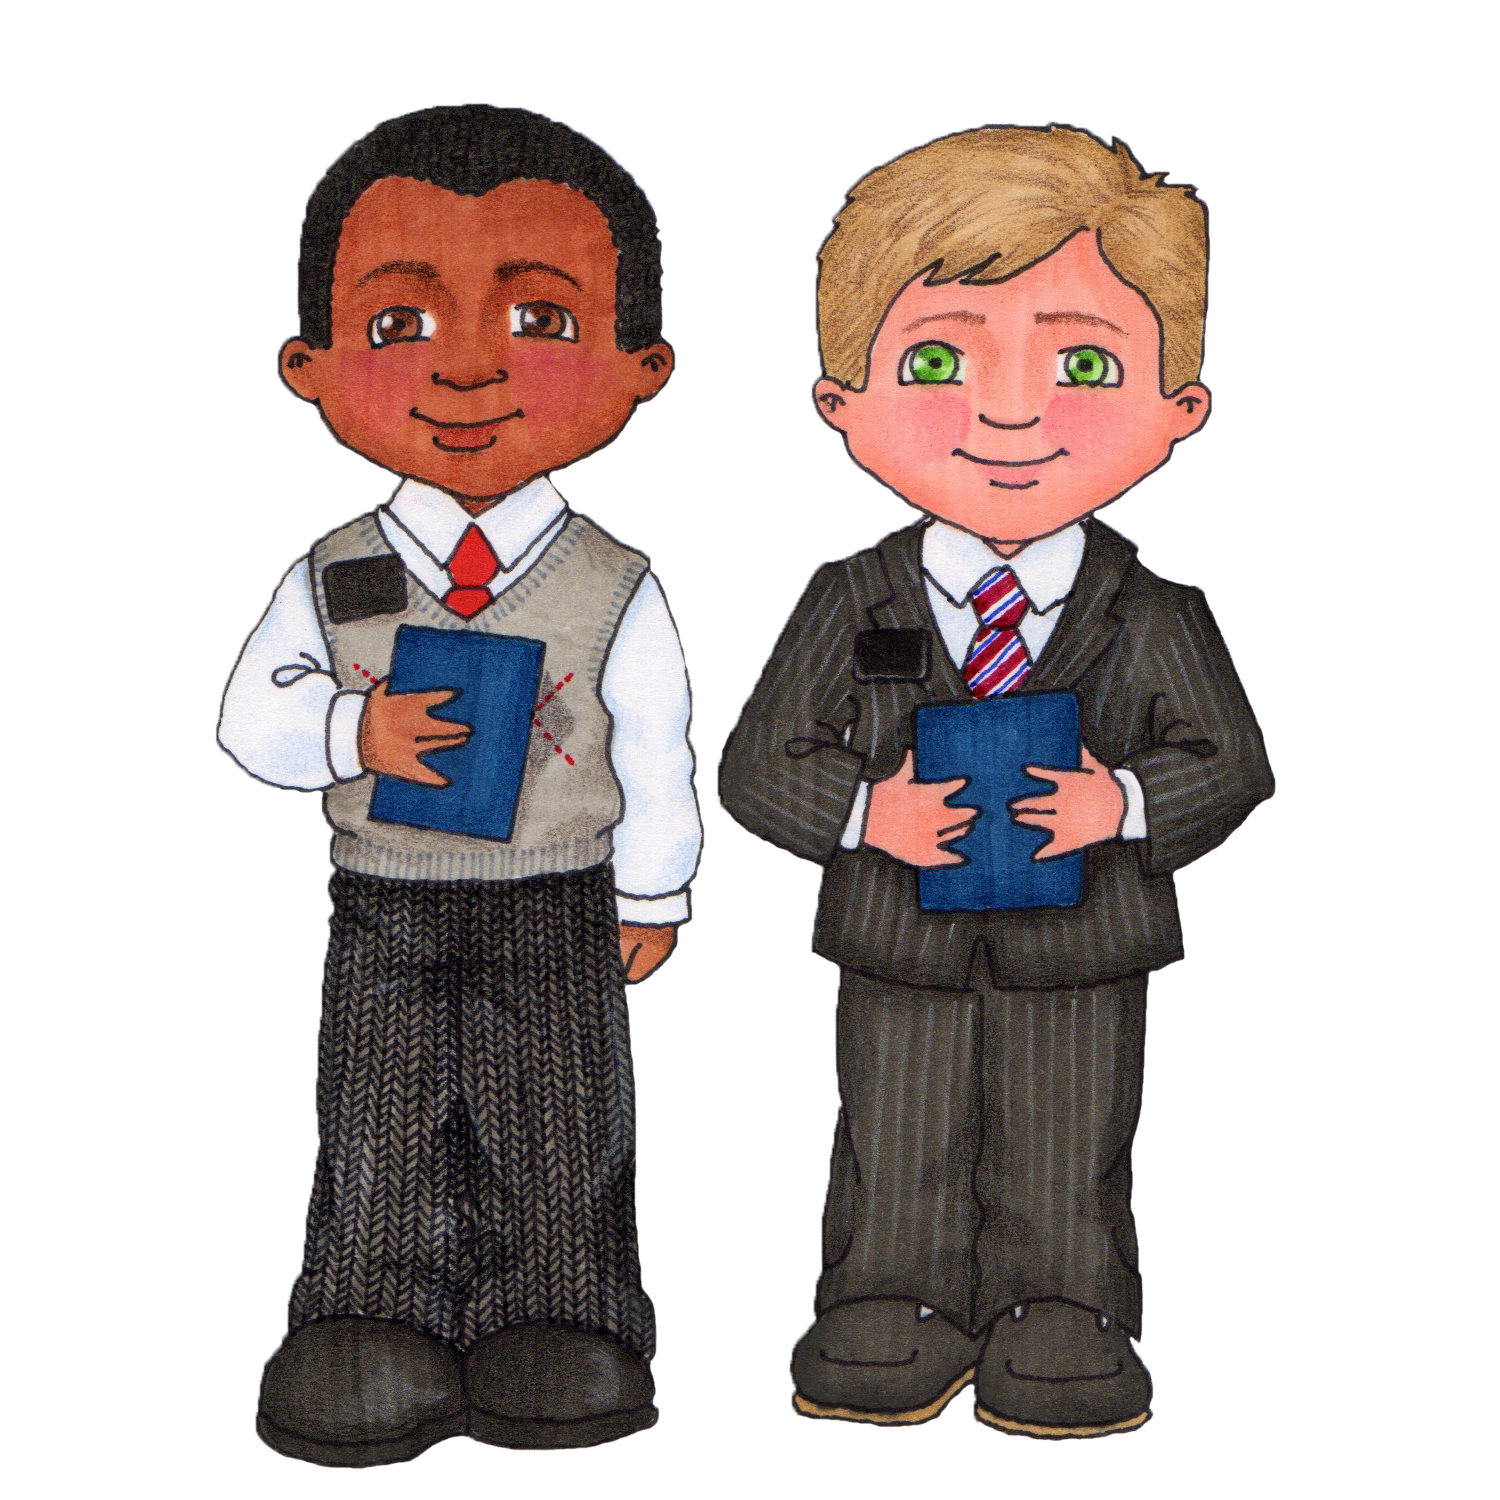 lds clipart missionary - Lds PNG Missionary